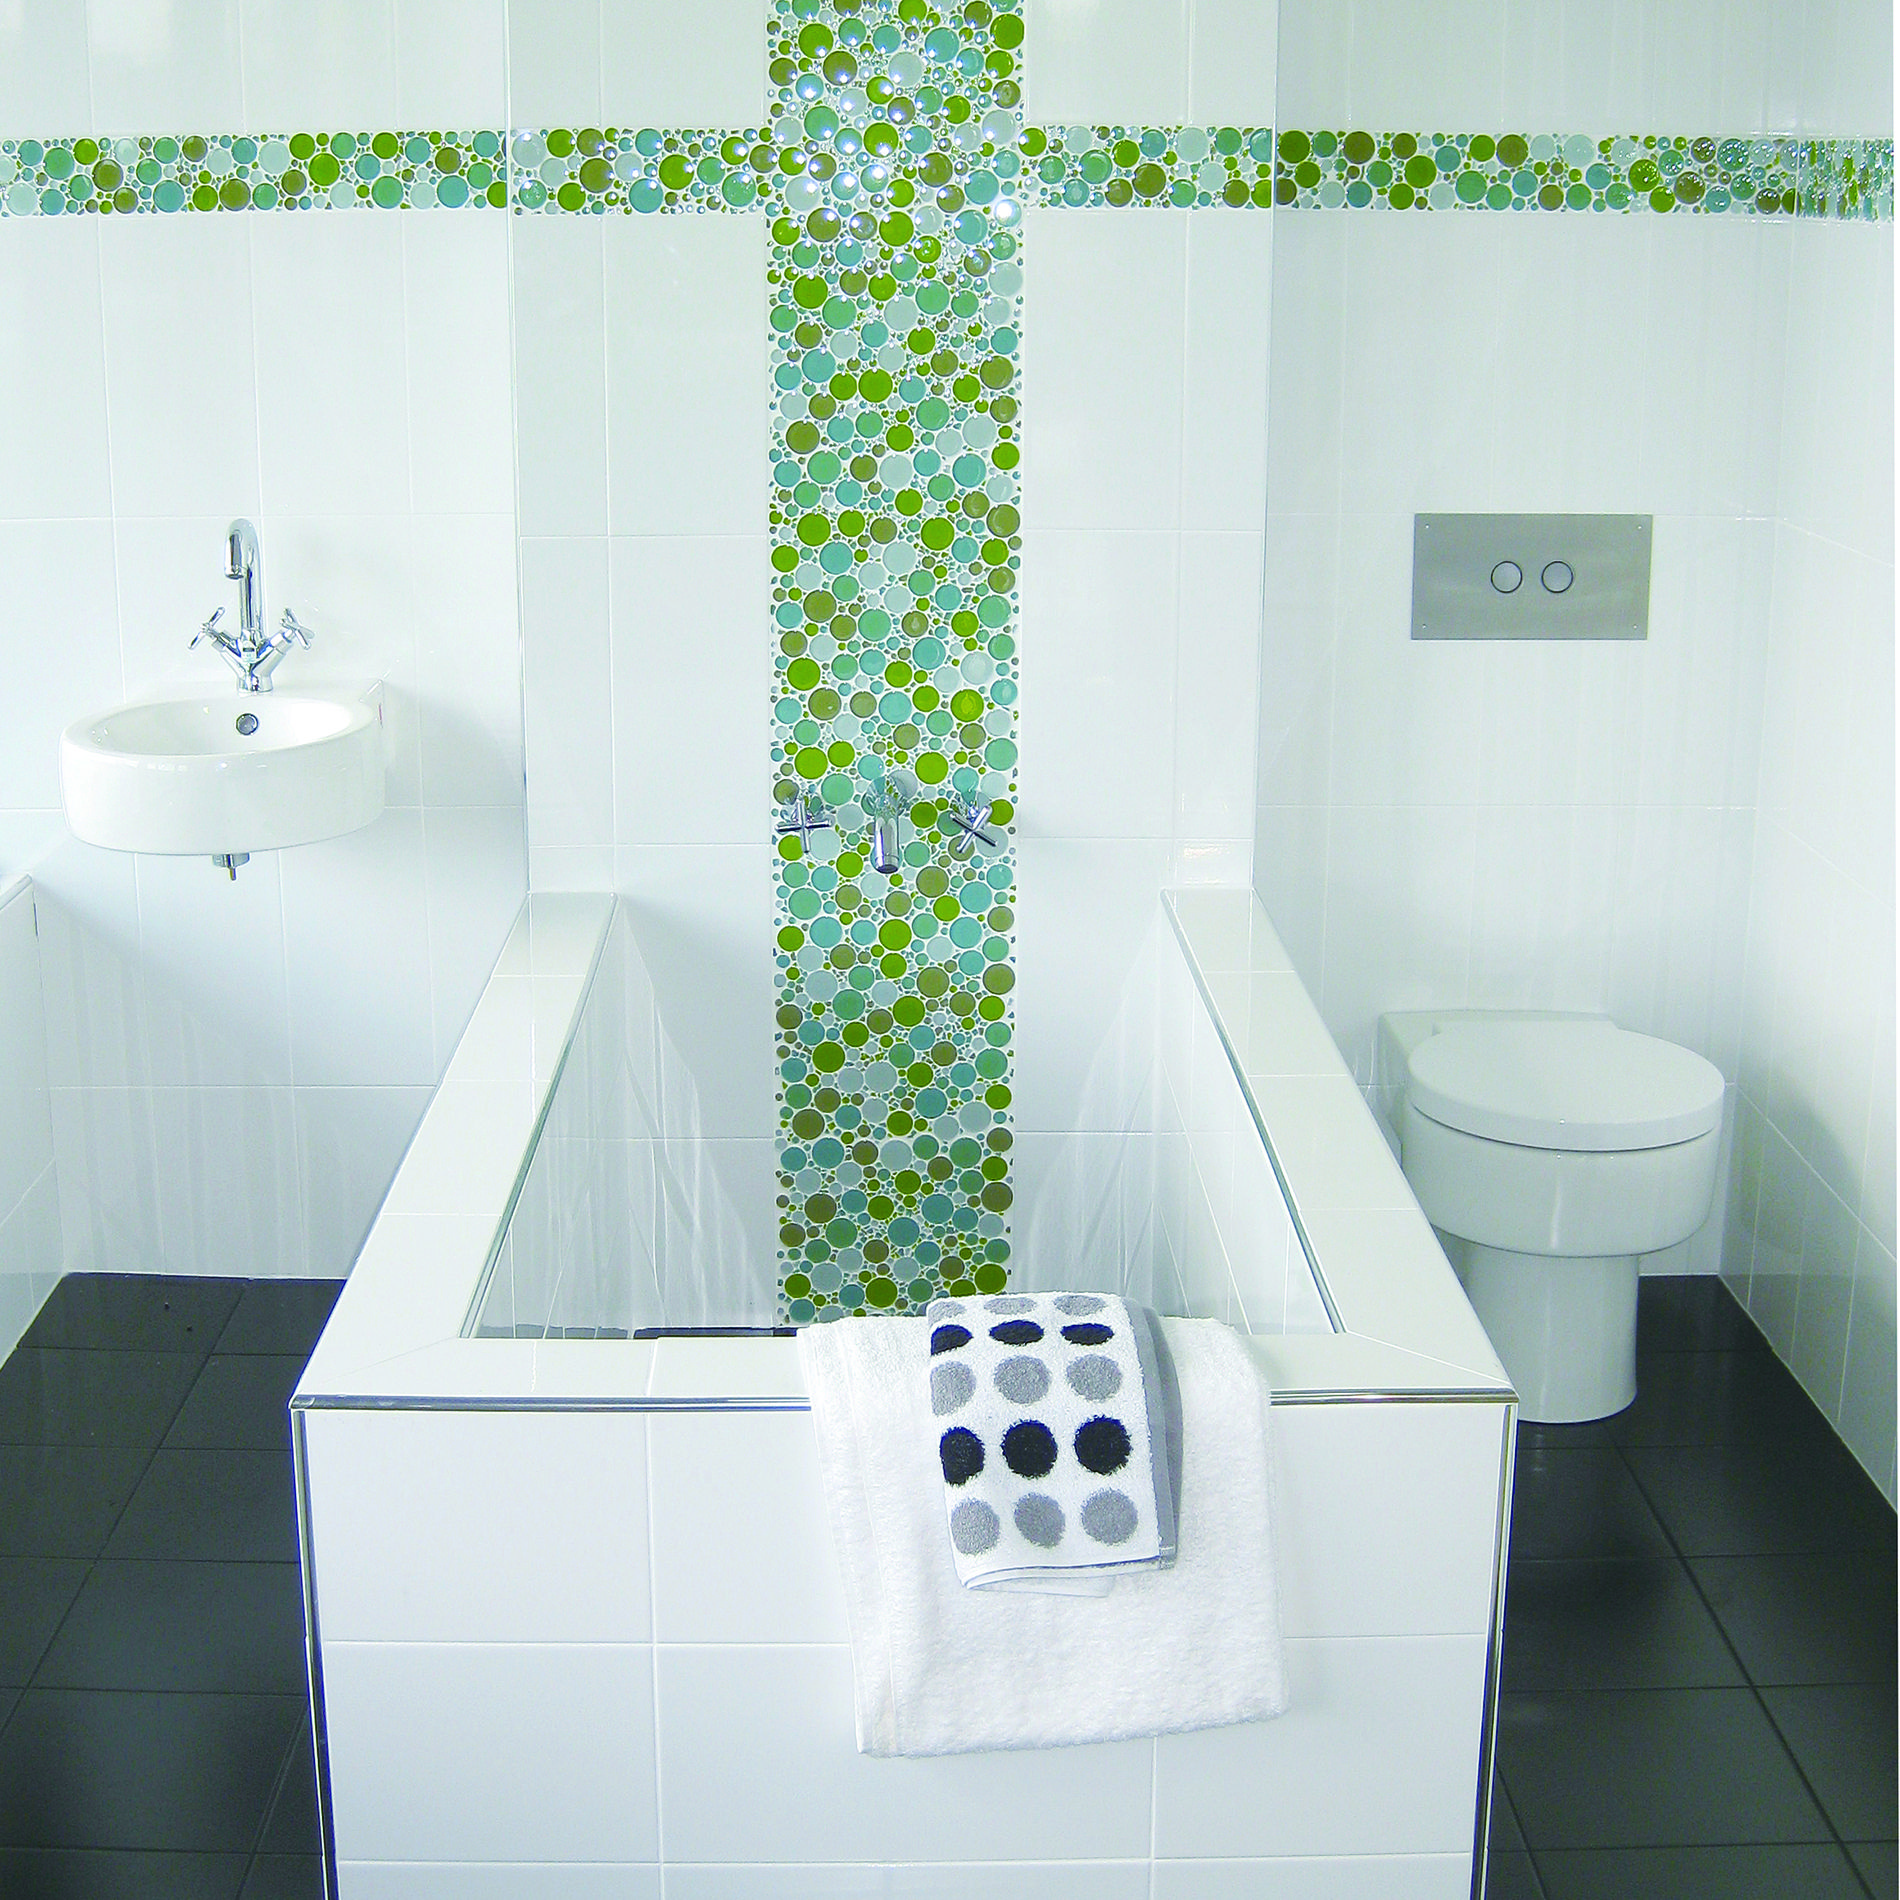 Steinfliesen Mosaik Bathroom Inspiration Designed With Everstone Bubble Mosaics